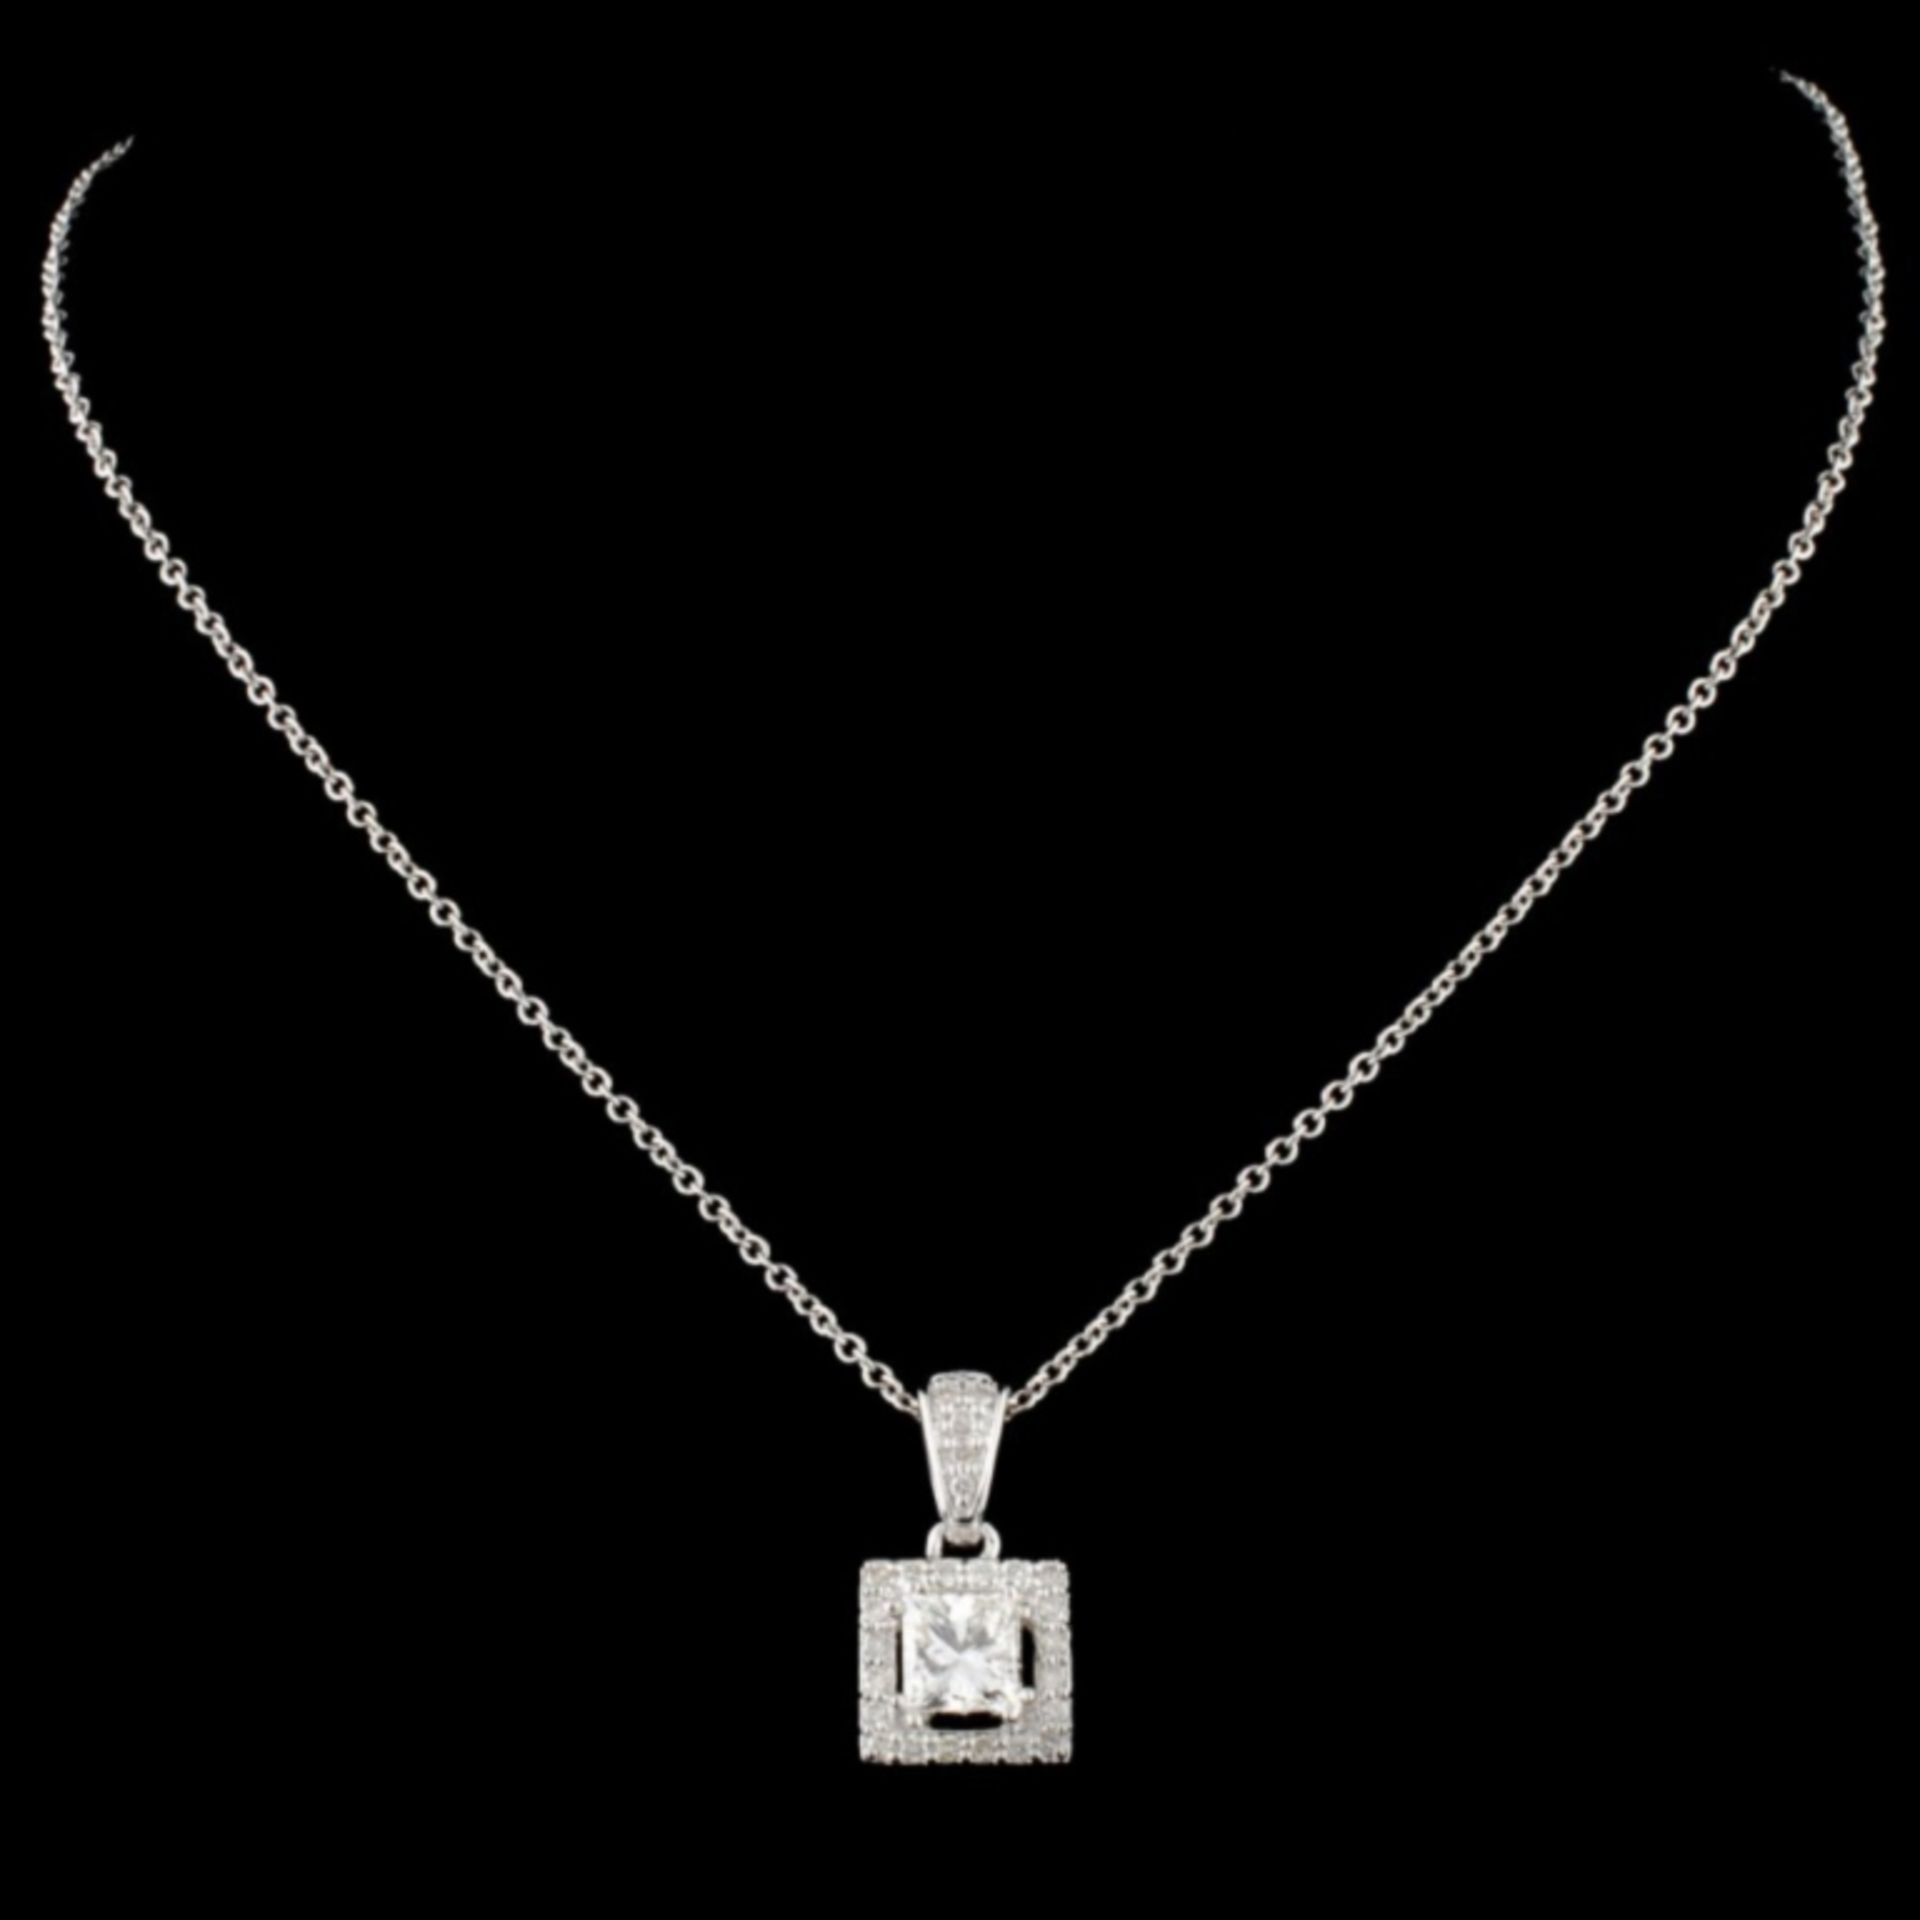 14K Gold 0.66ctw Diamond Pendant - Image 2 of 2